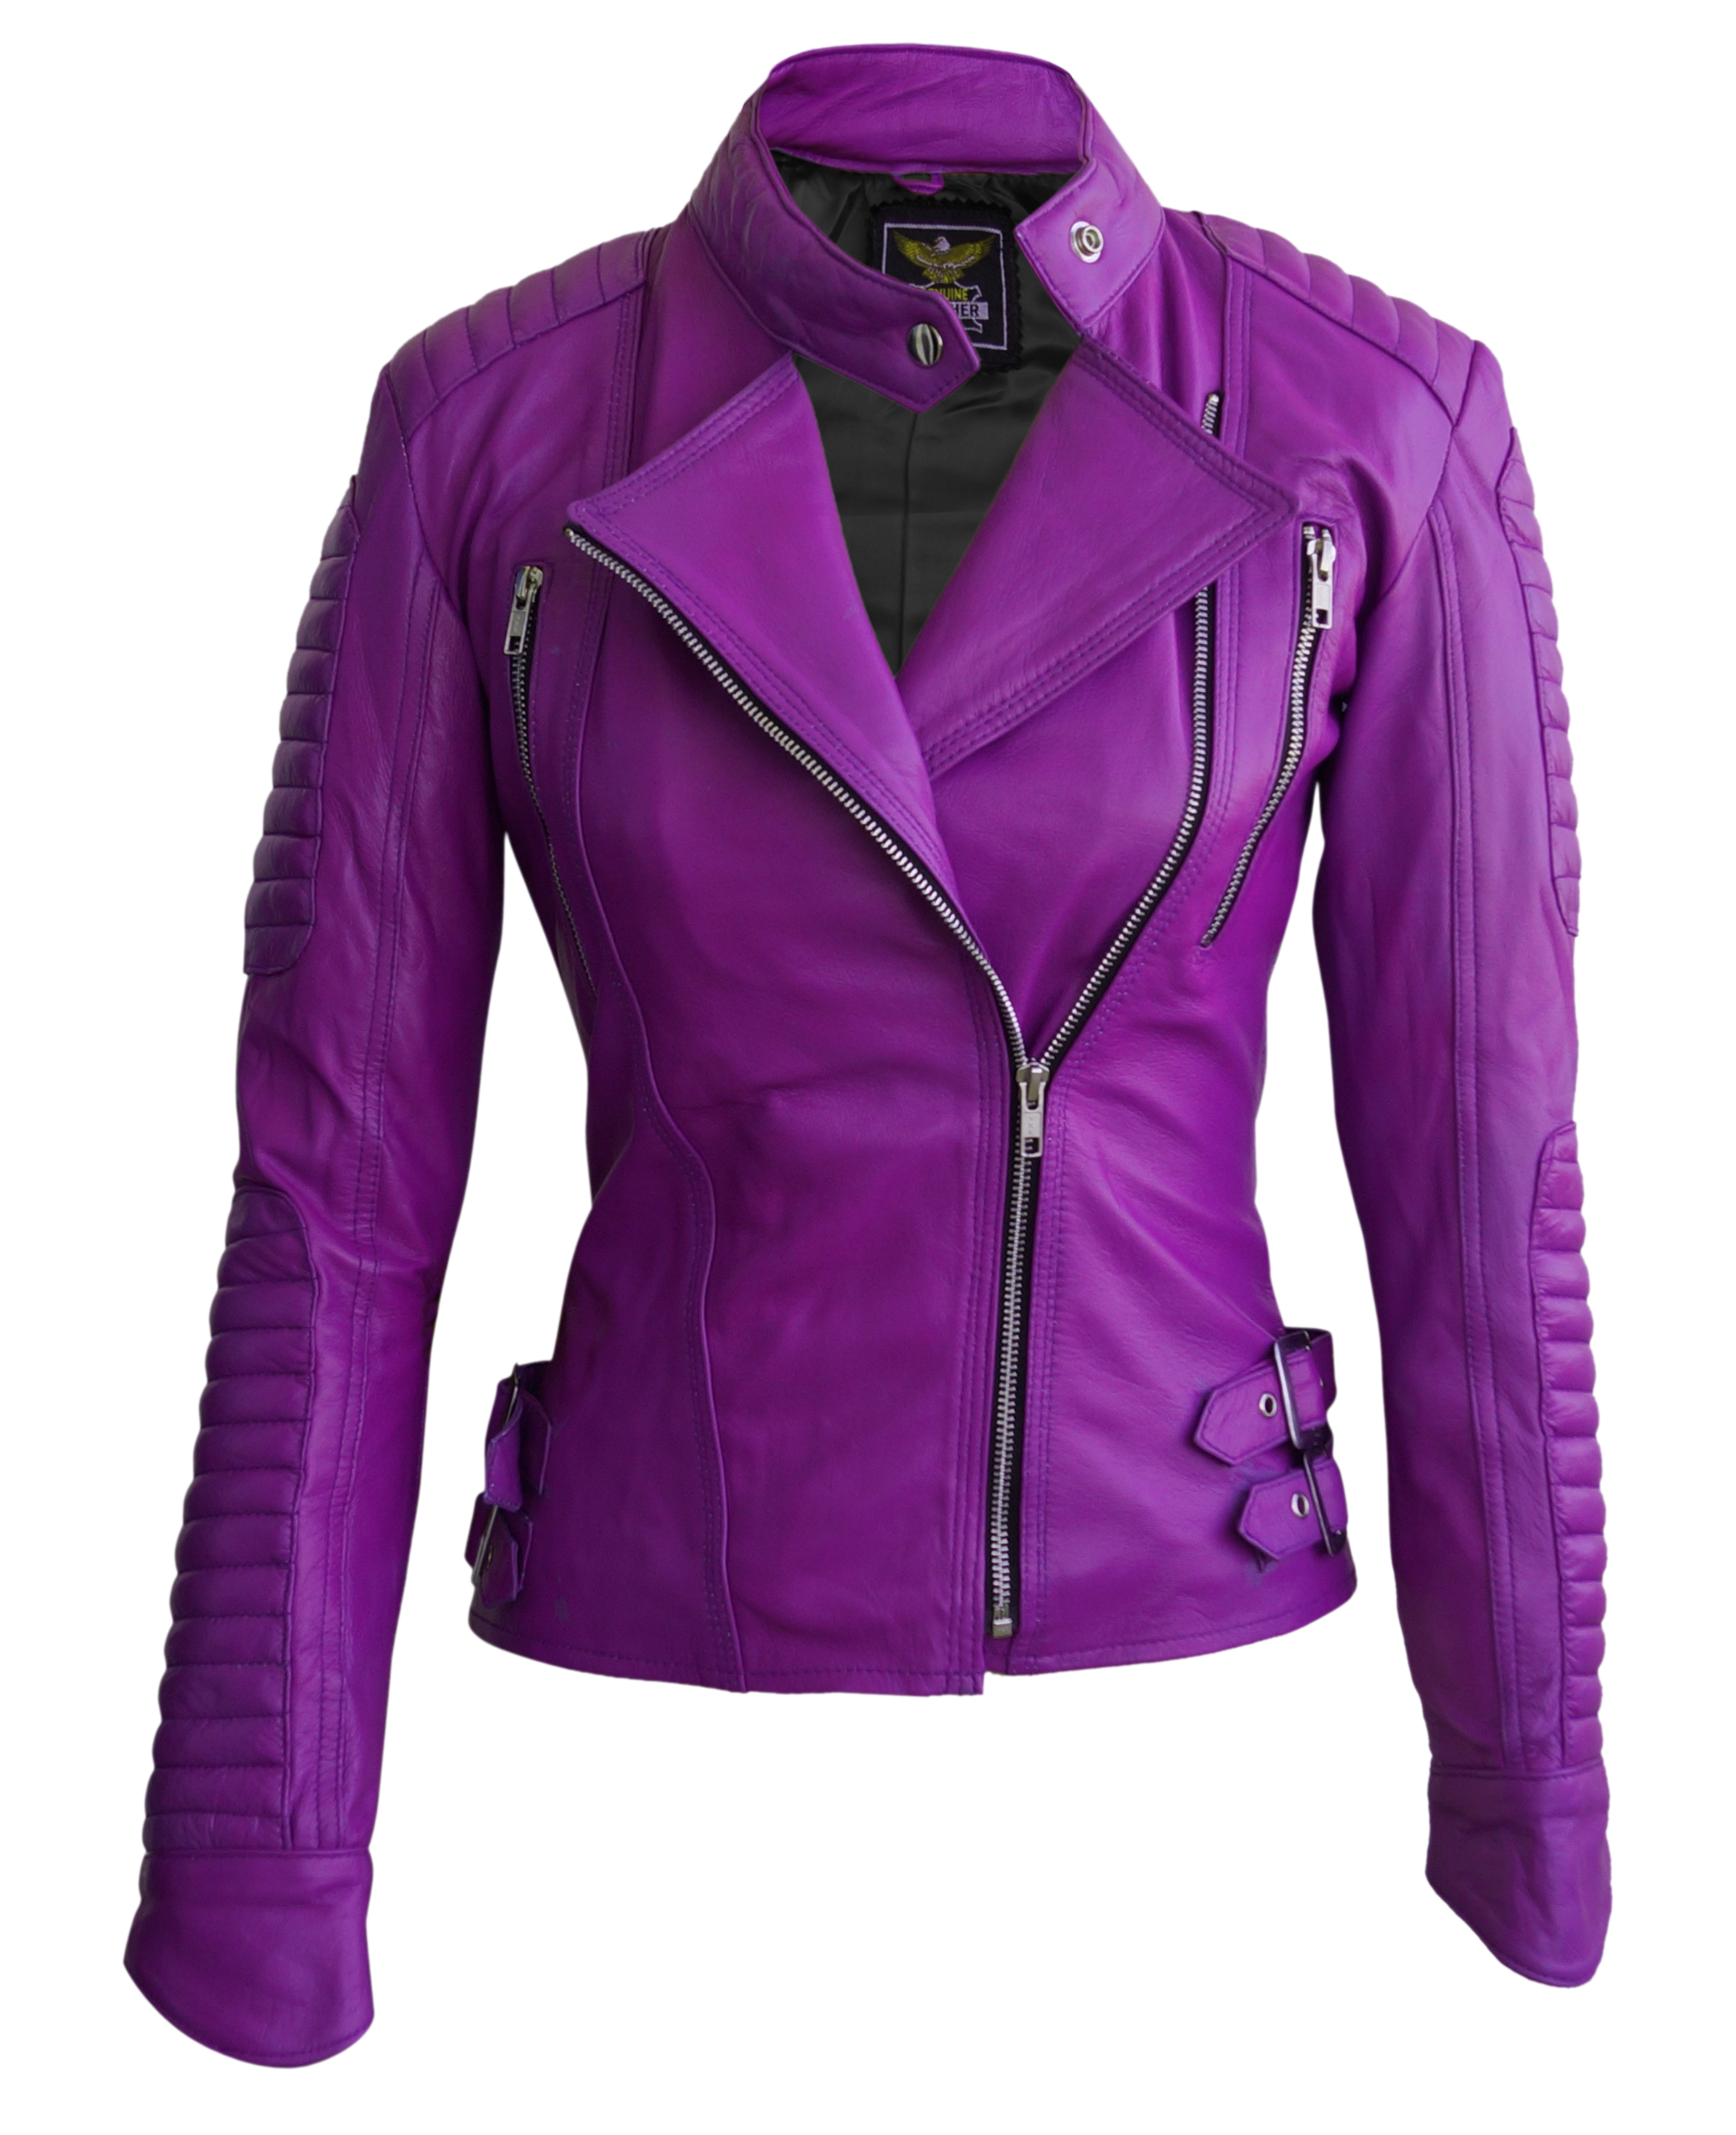 Winlit // Purple Leather Fringed Cropped Jacket Live out all your 80's dreams in this bright purple leather jacket from Winlit. Dark lavender purple, almost an ultraviolet color.